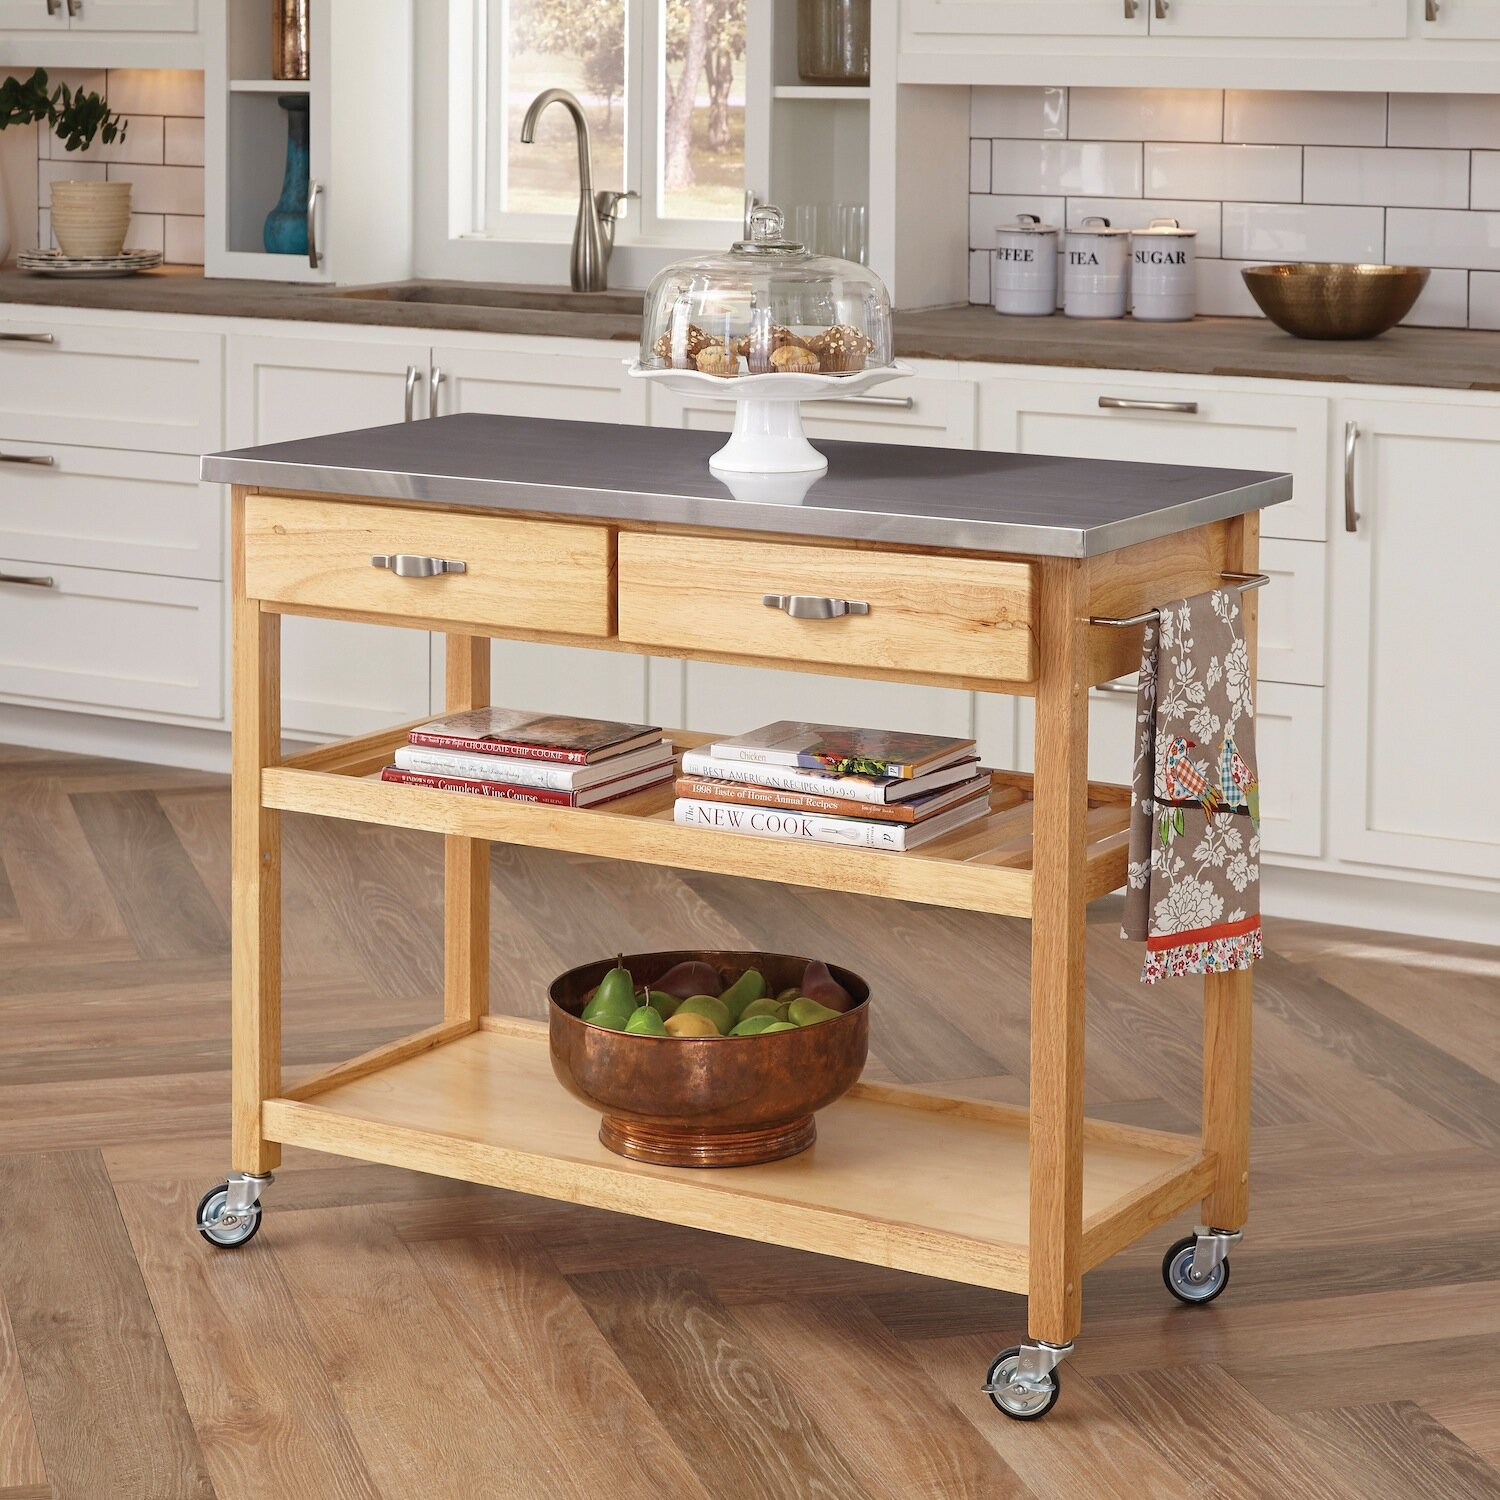 Https Www Wayfair Com Home Styles Kitchen Island With Stainless Steel Top Ho1026 Html